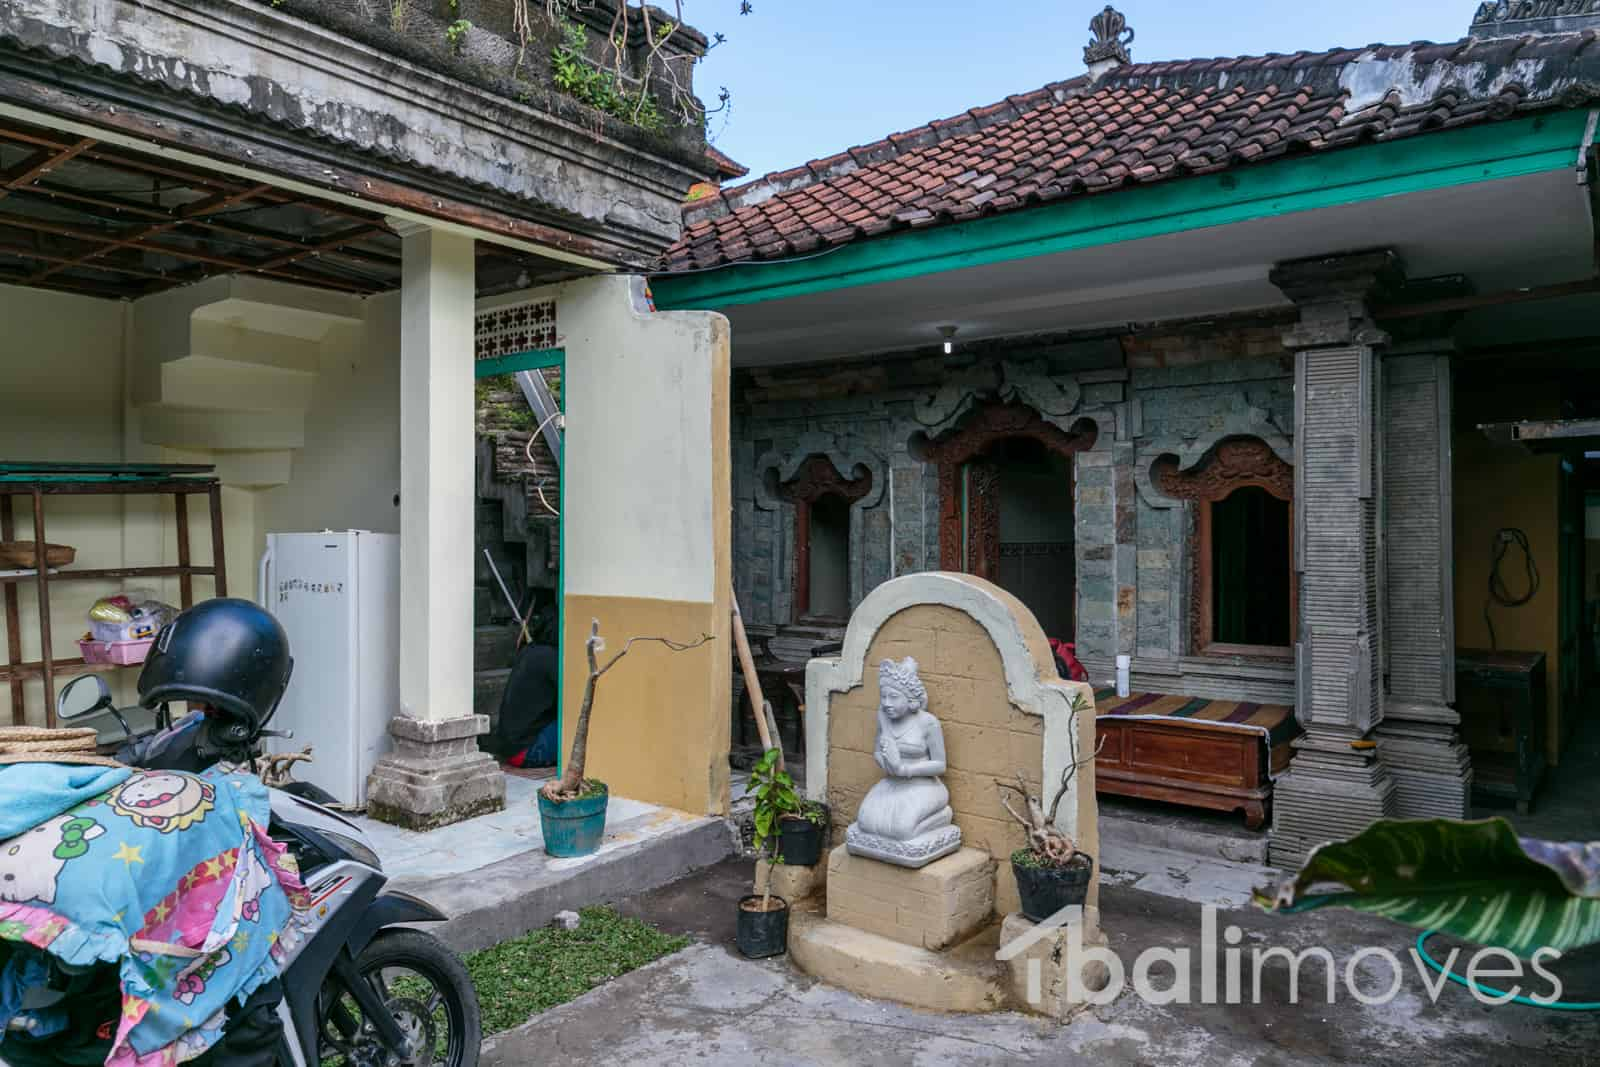 A Local Three Bedroom House For Rent Balimoves Property